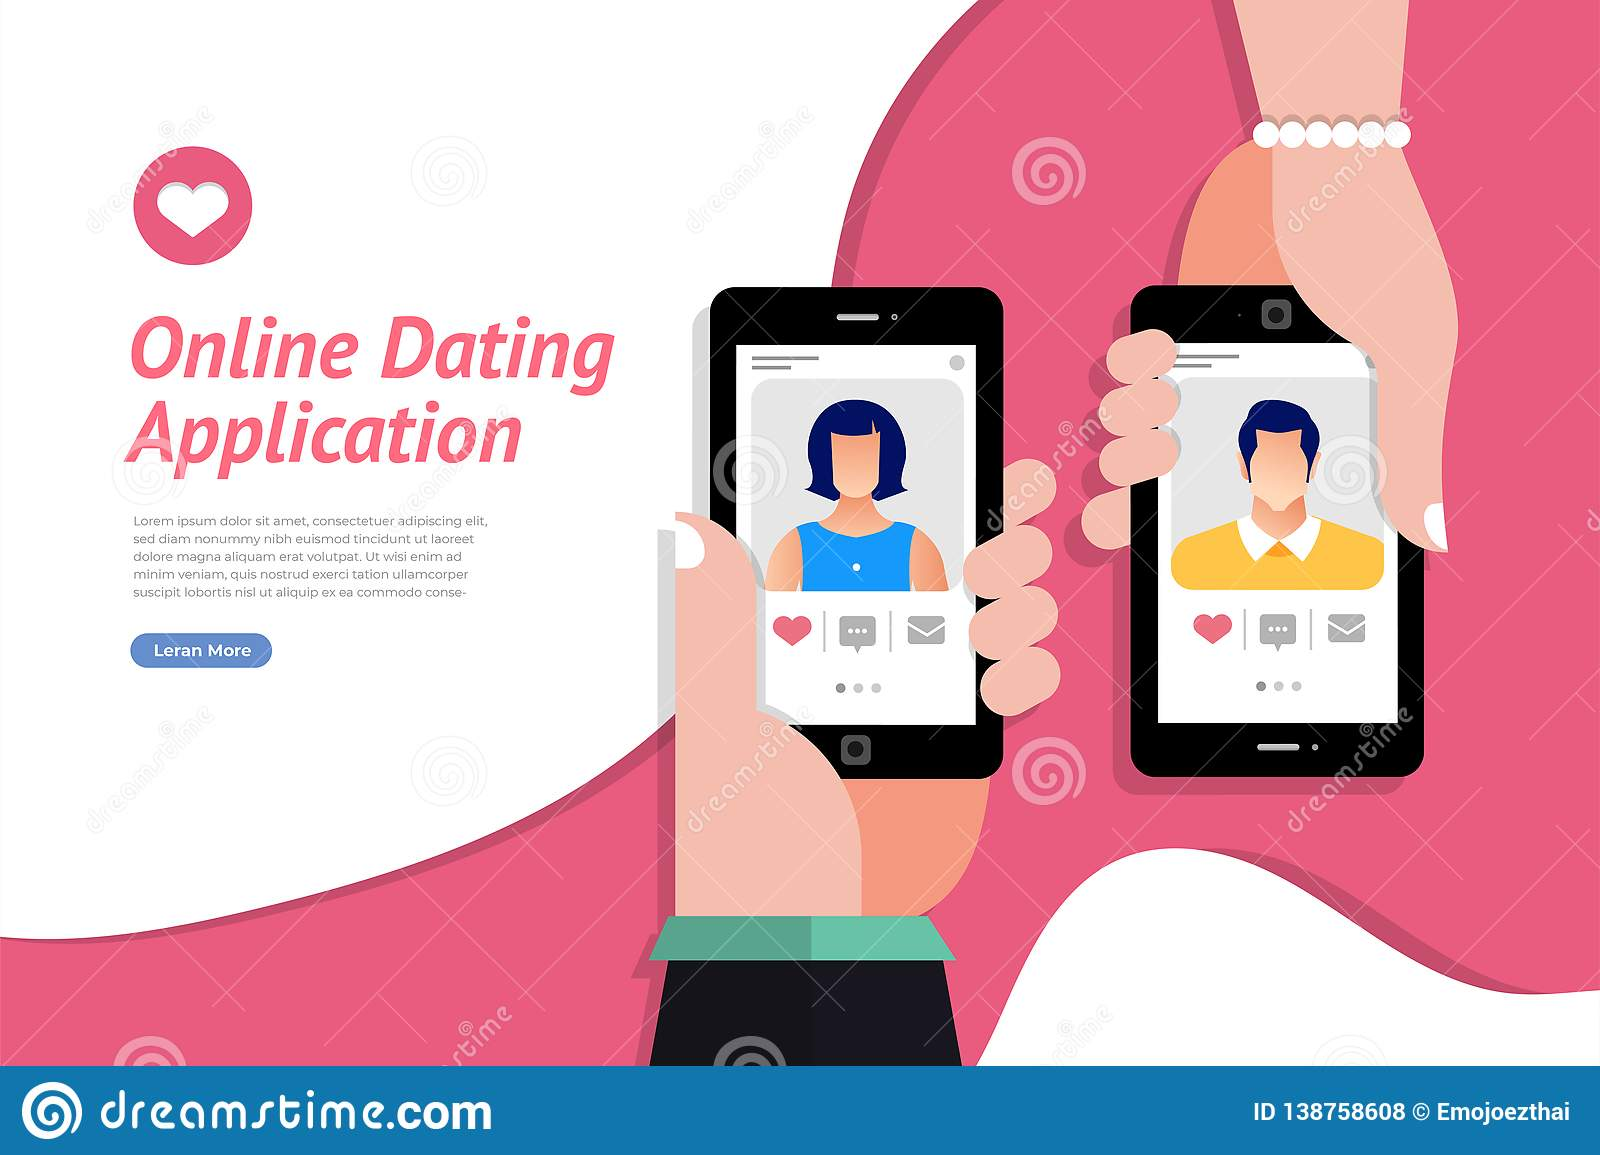 Online dating applications